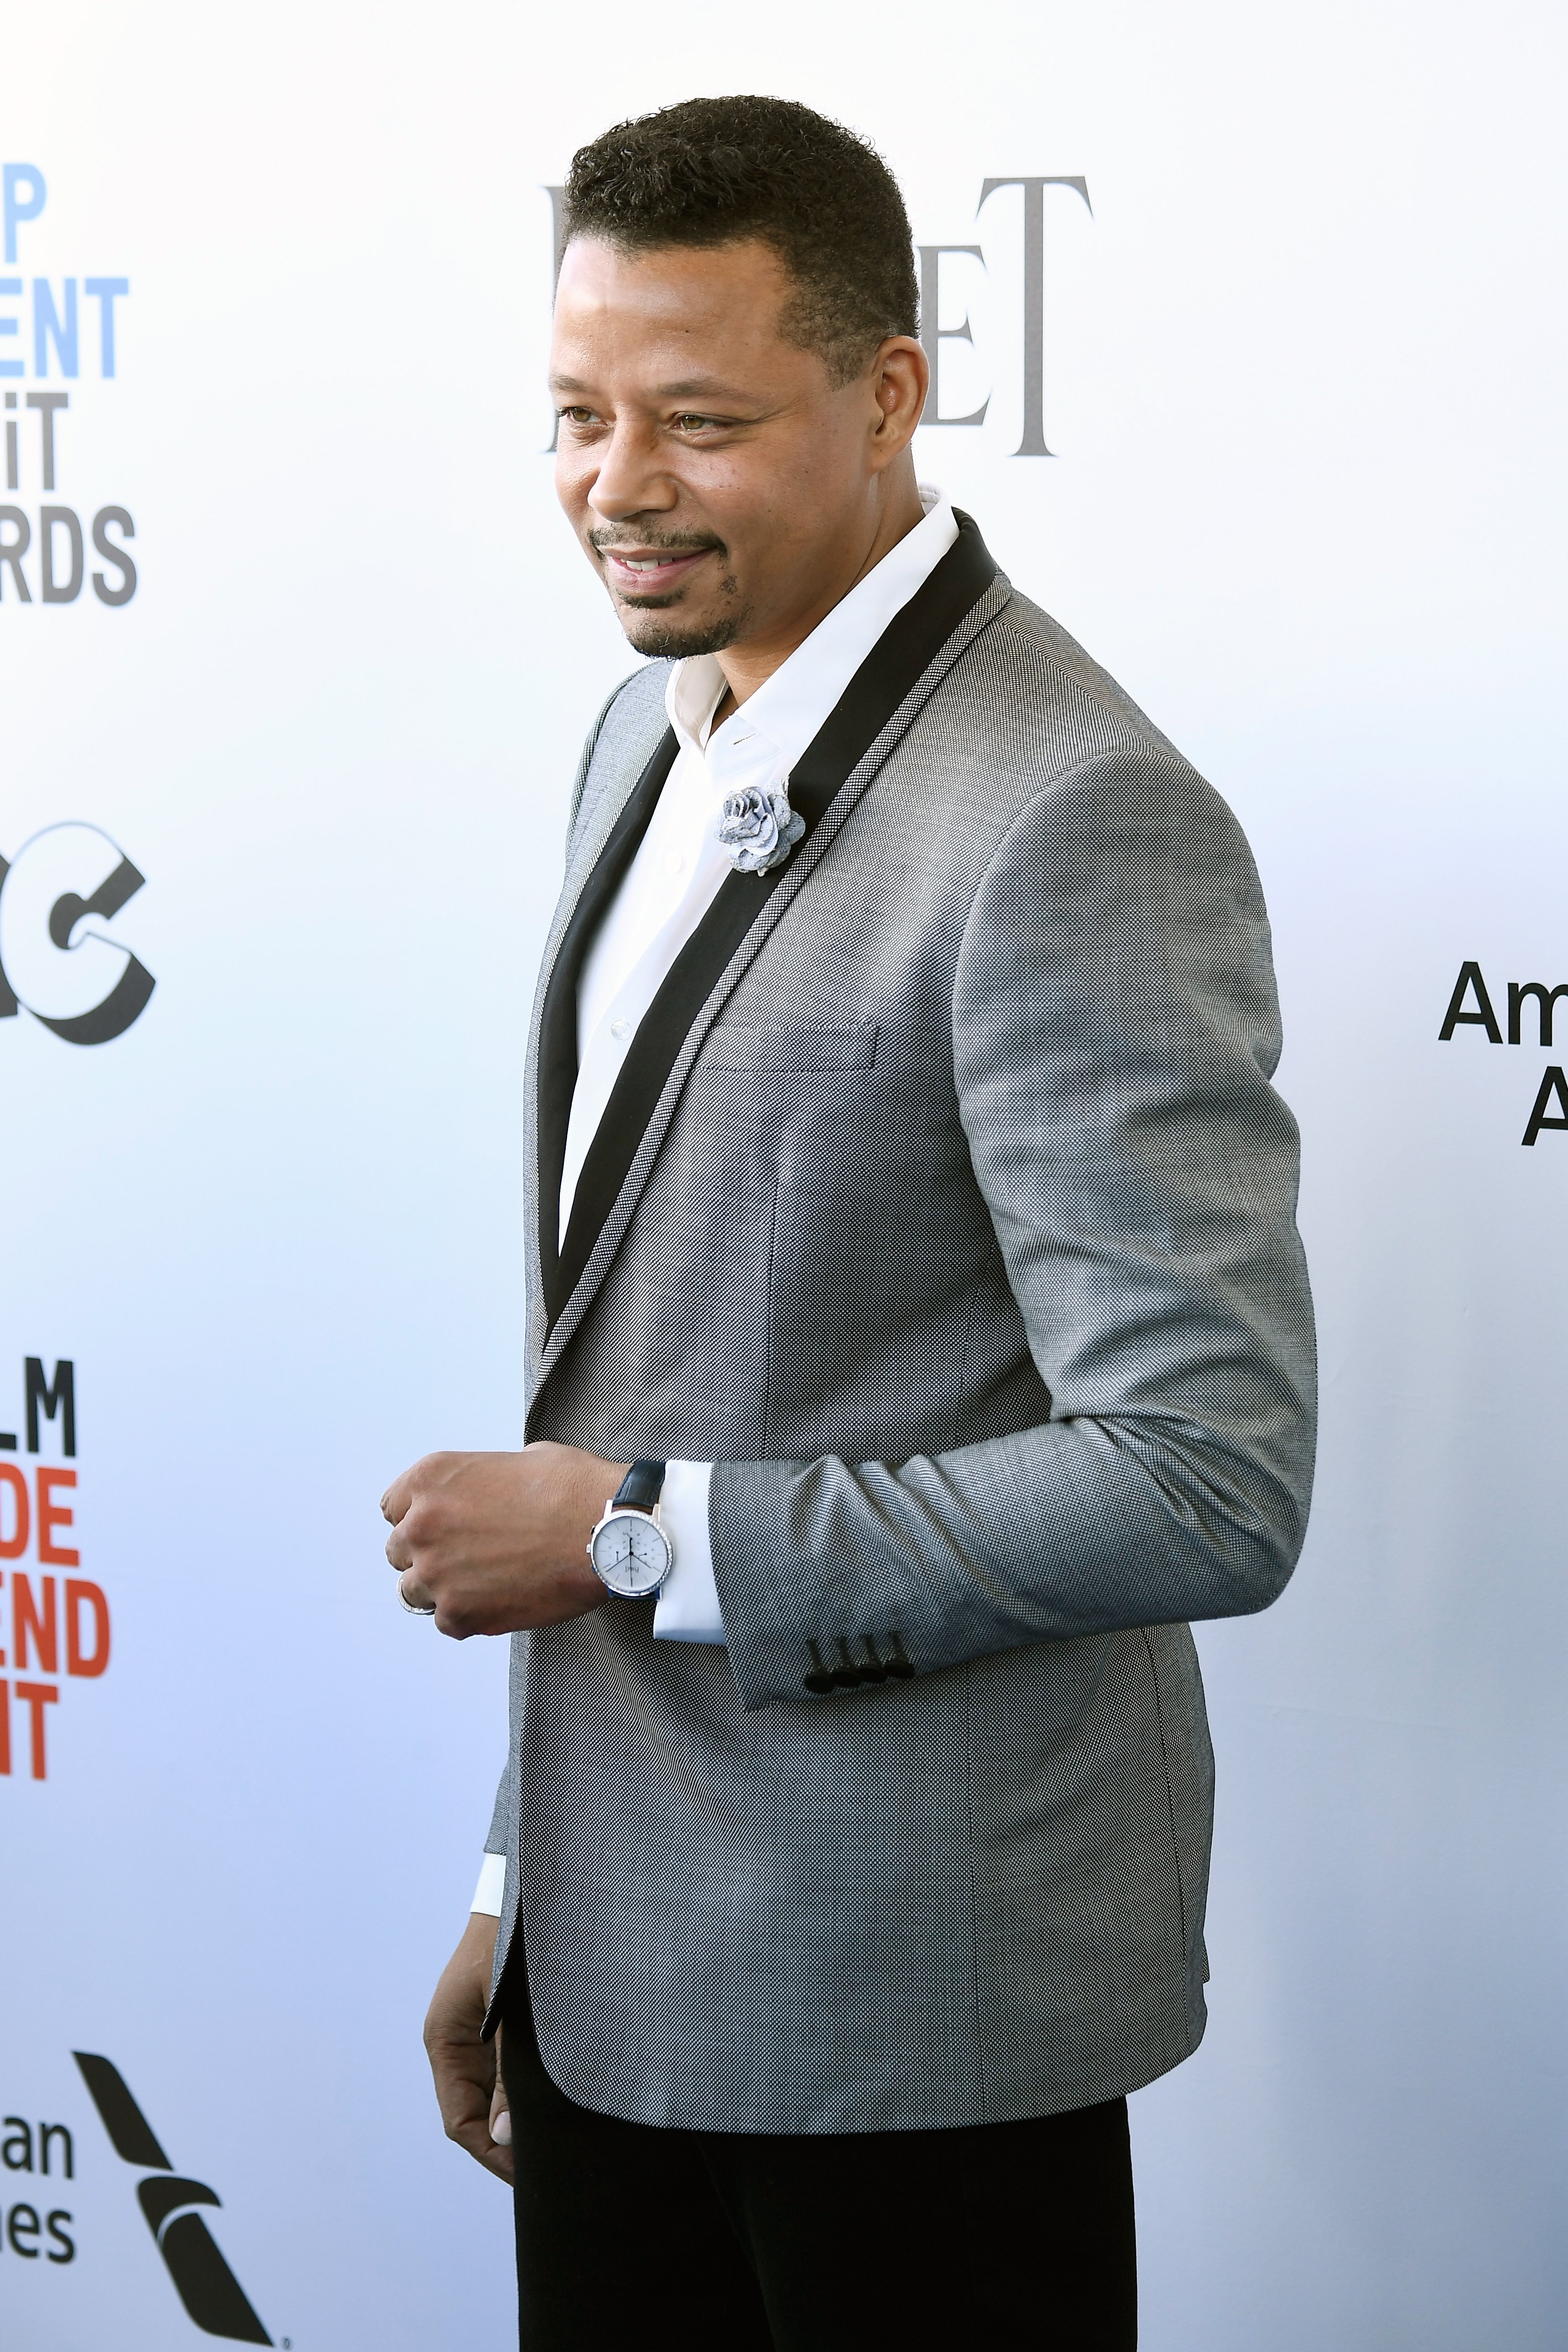 Terrence Howard at the 2017 Film Independent Spirit Awards on Feb. 25, 2017 in California | Photo: Getty Images